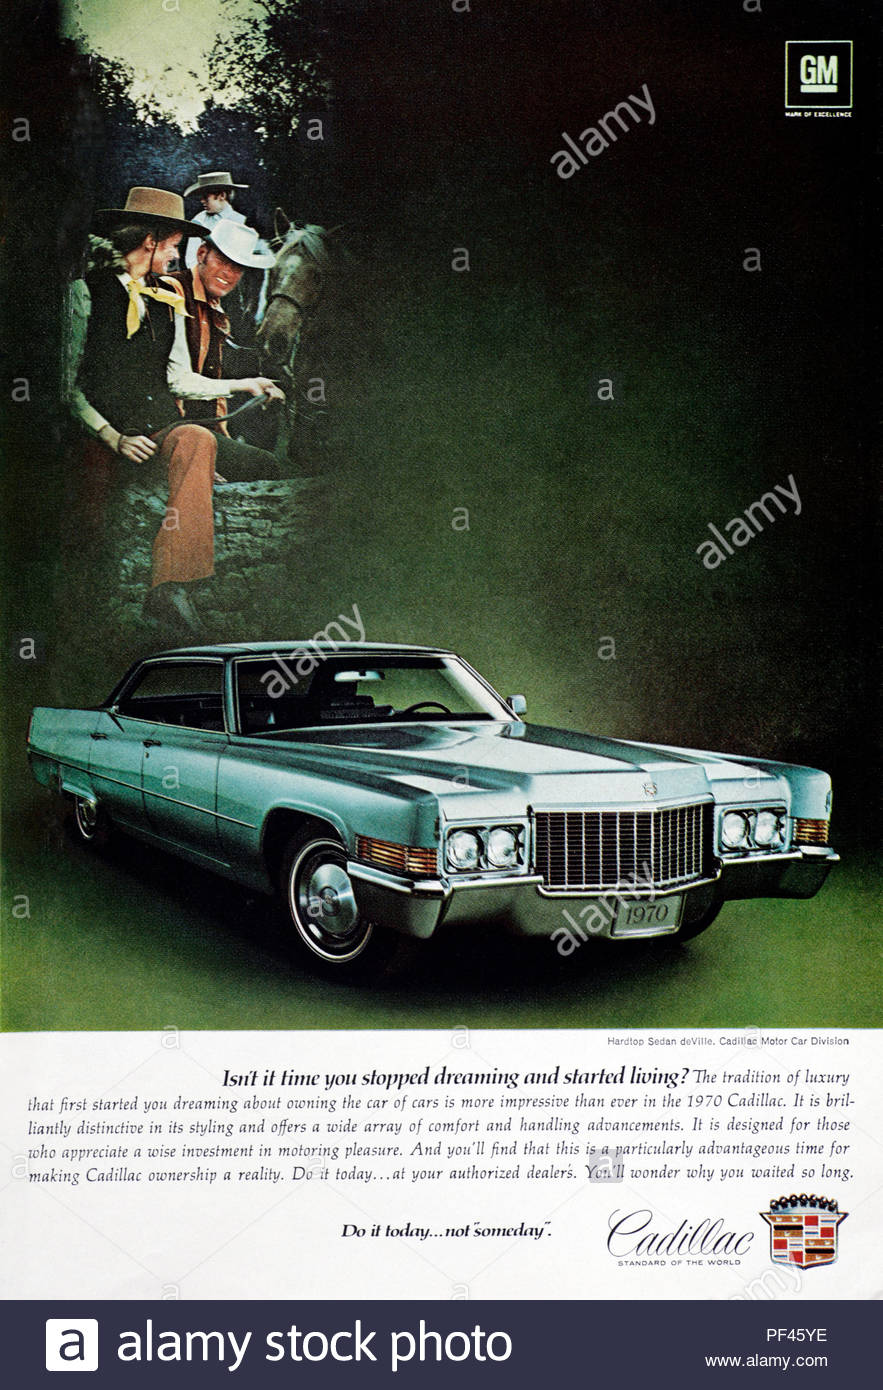 Vintage advertising for the Cadillac car 1970 - Stock Image